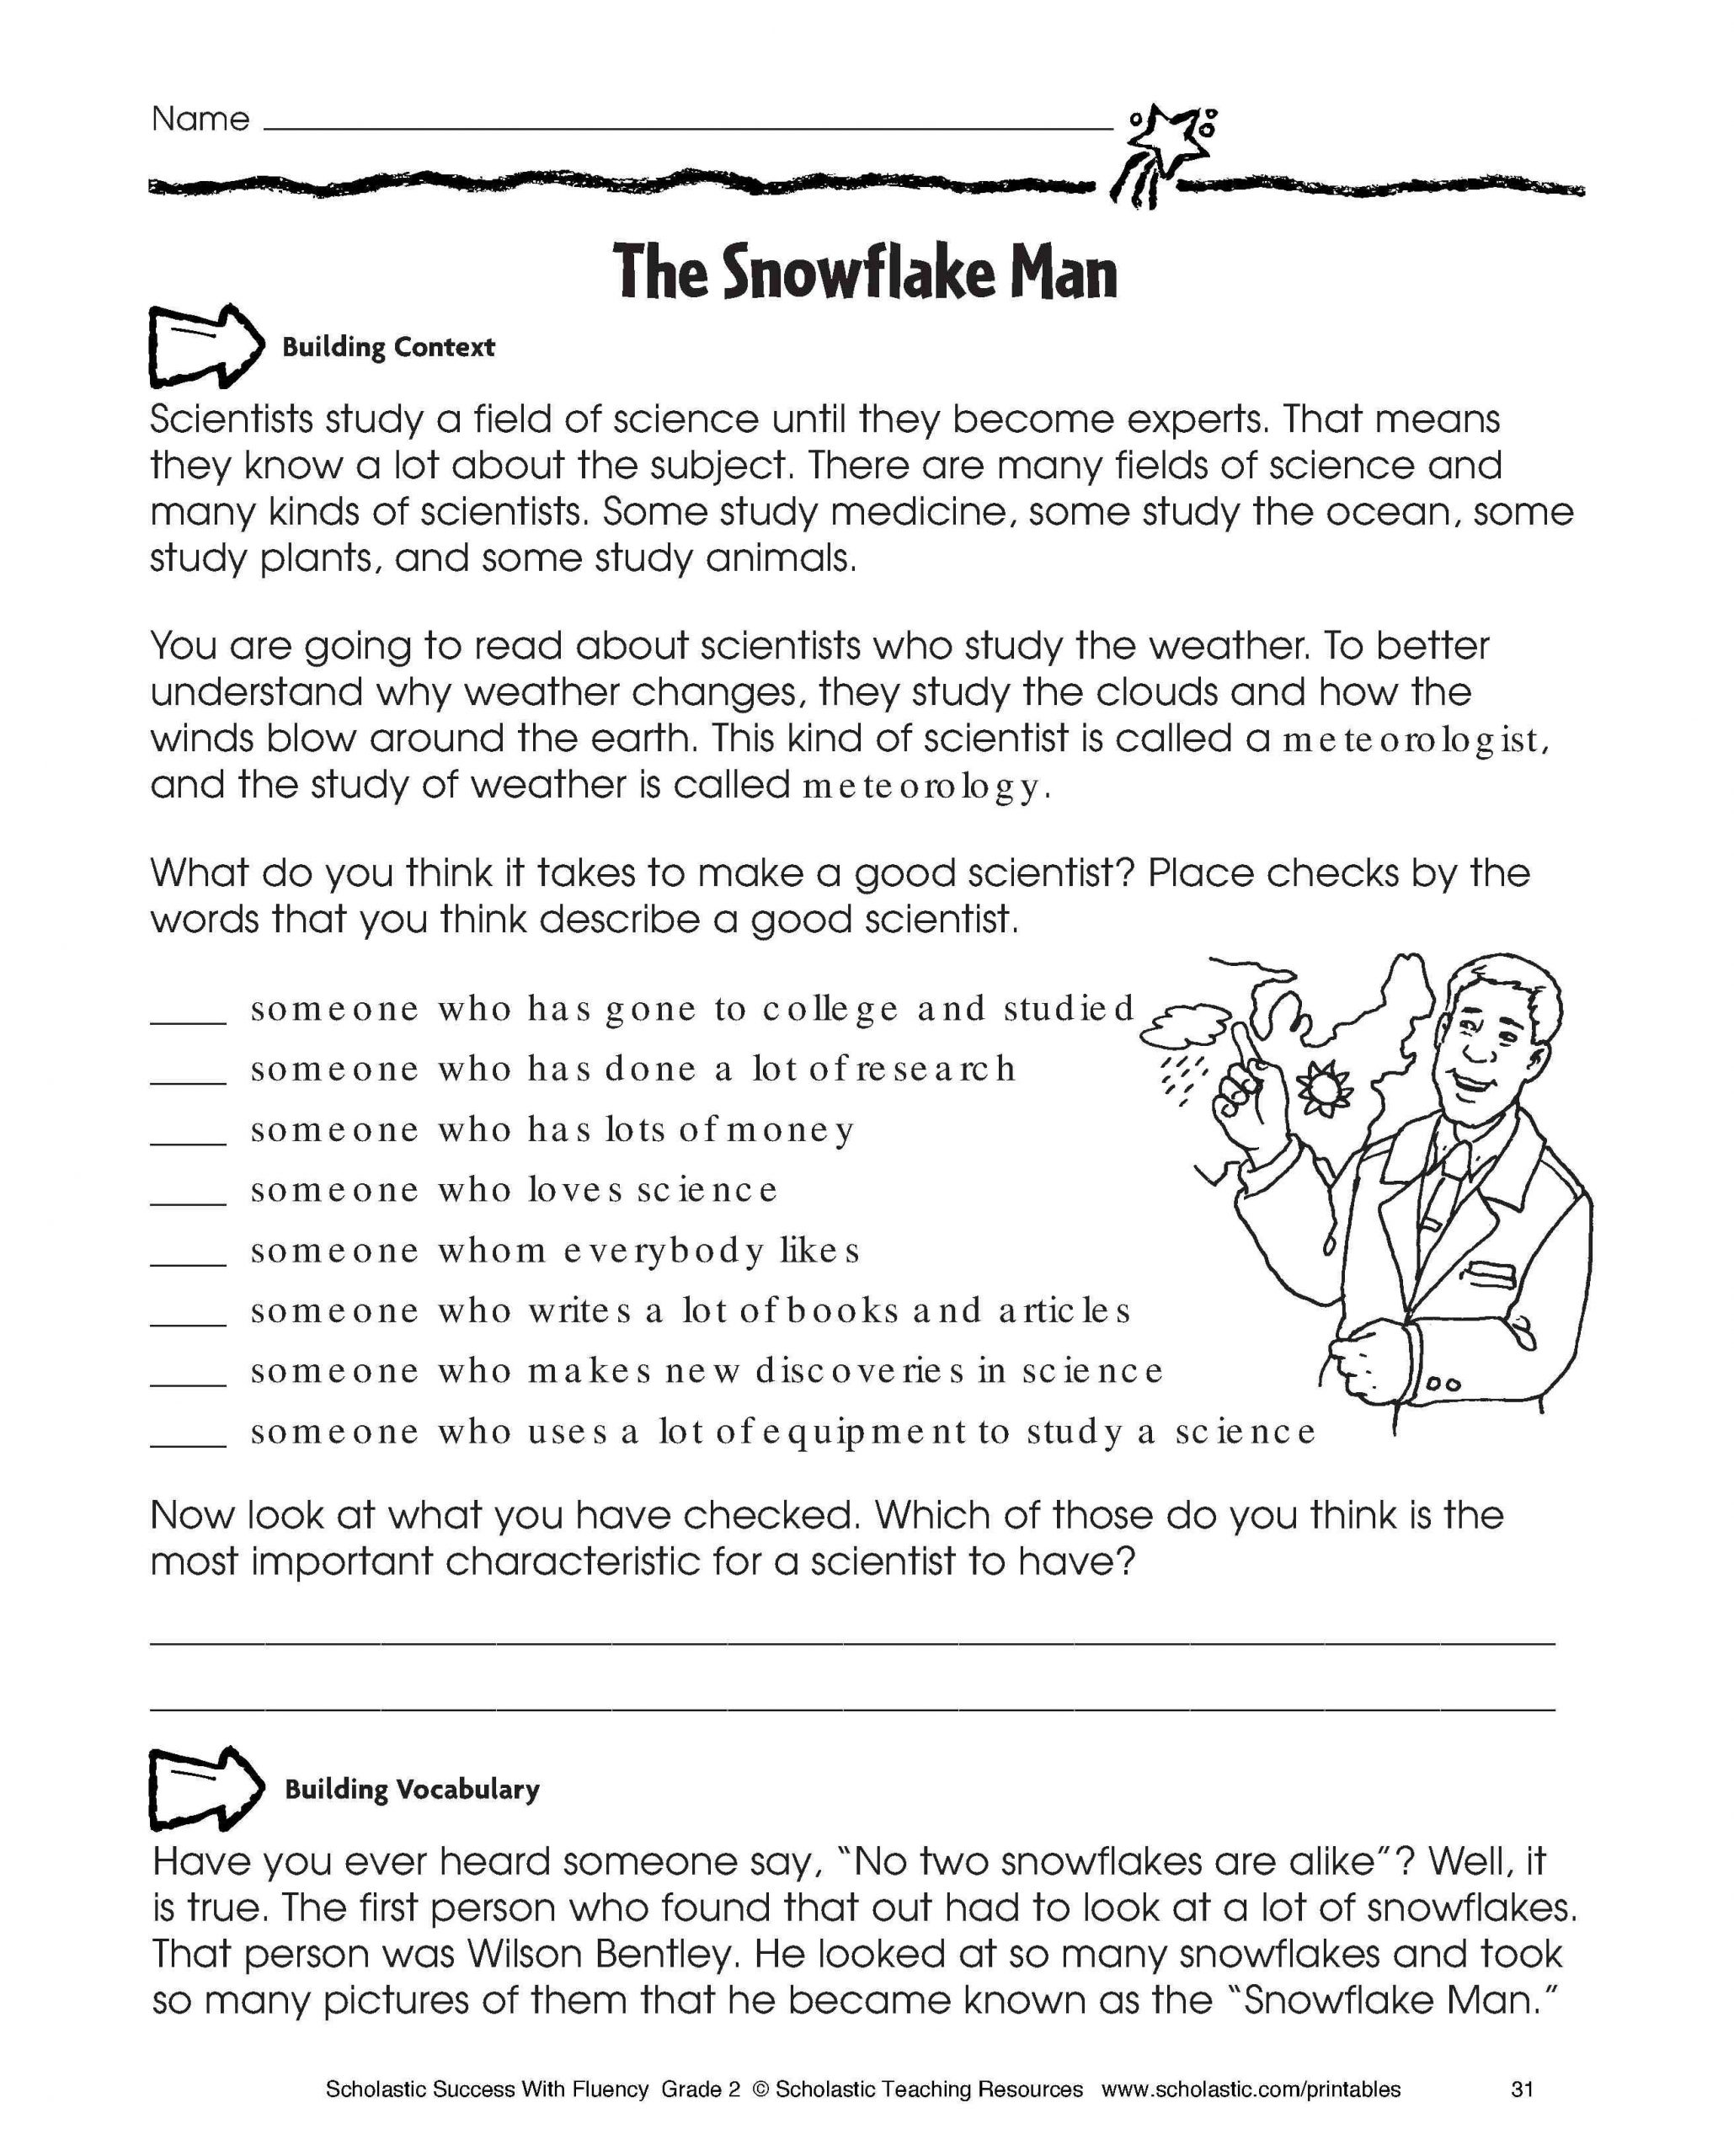 Informational Text Worksheets Middle School